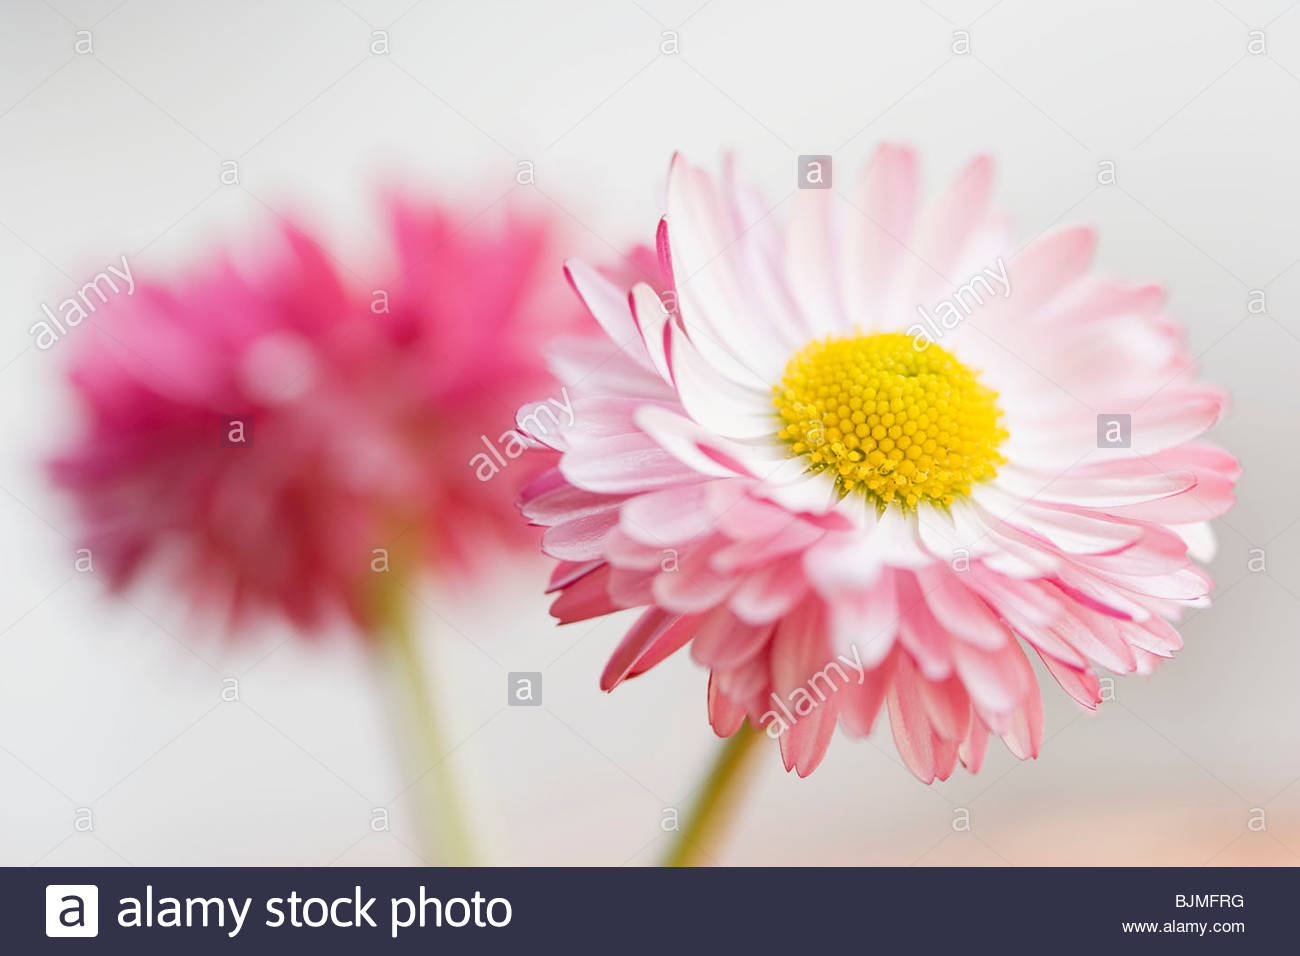 Two Daisies On The Sidewalk Royalty Free Stock Images Image